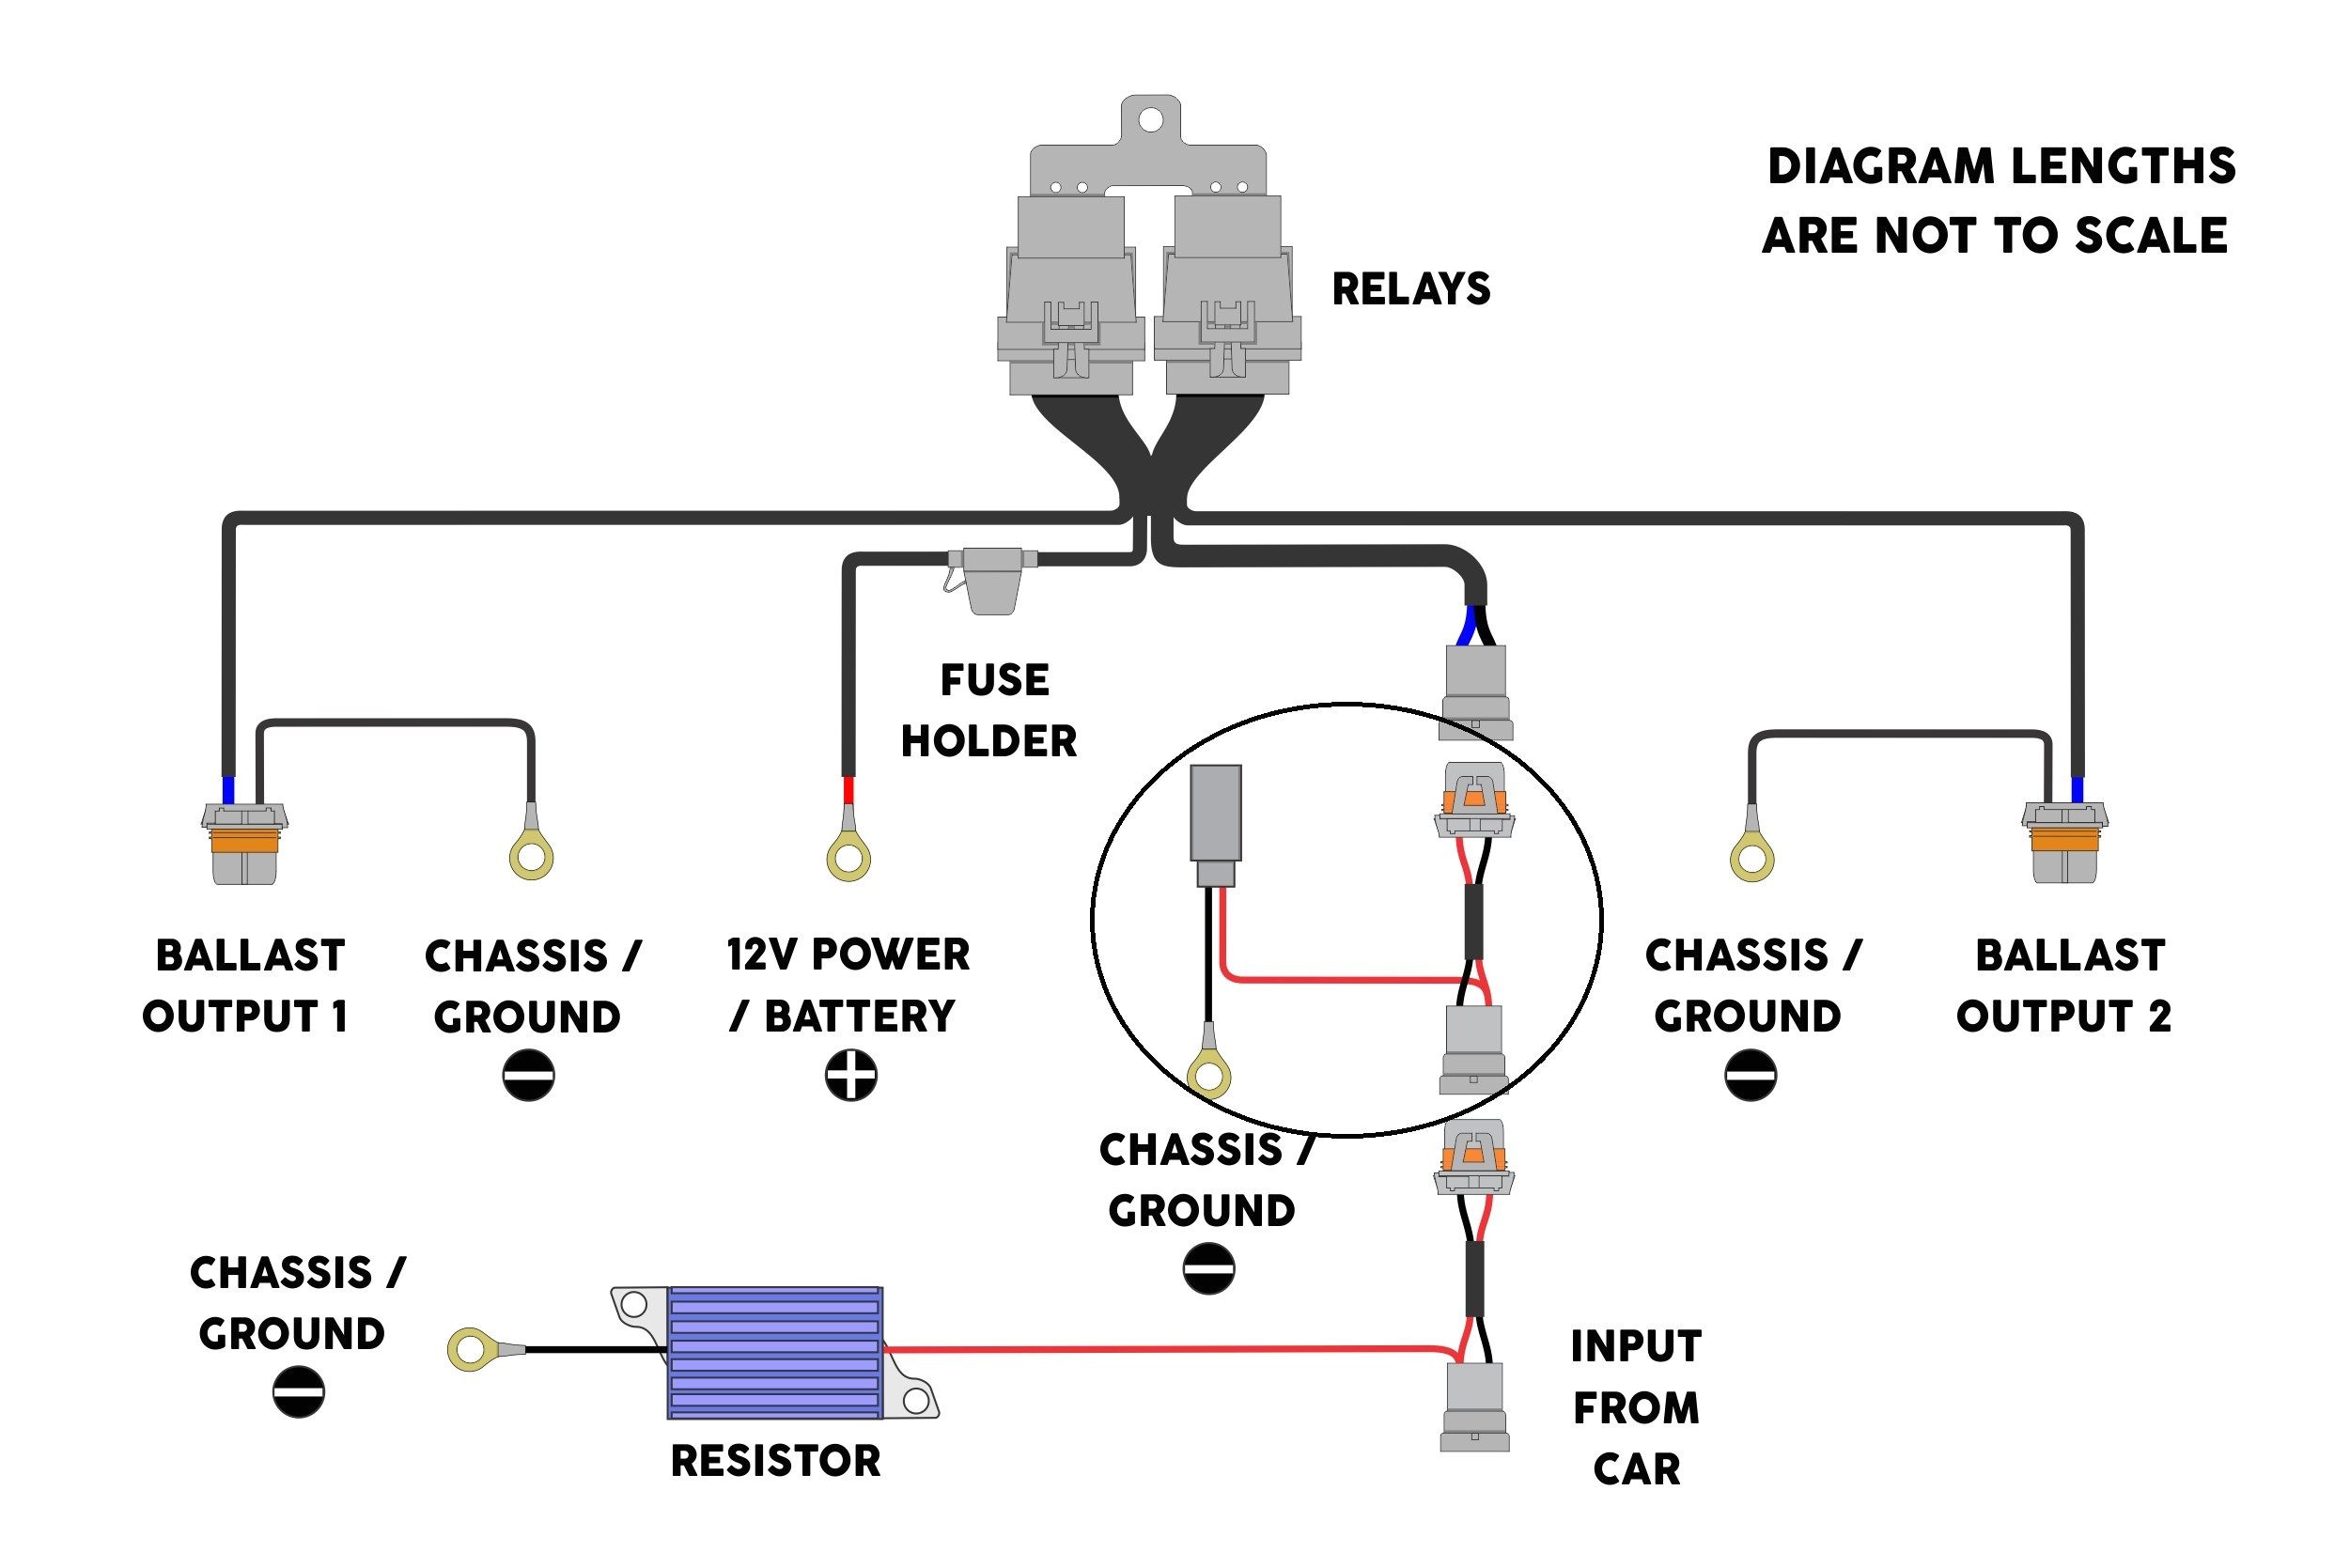 wiring diagram for hid lights reference relay inspirationa of motorcycle hid wiring diagram hid wiring diagrams